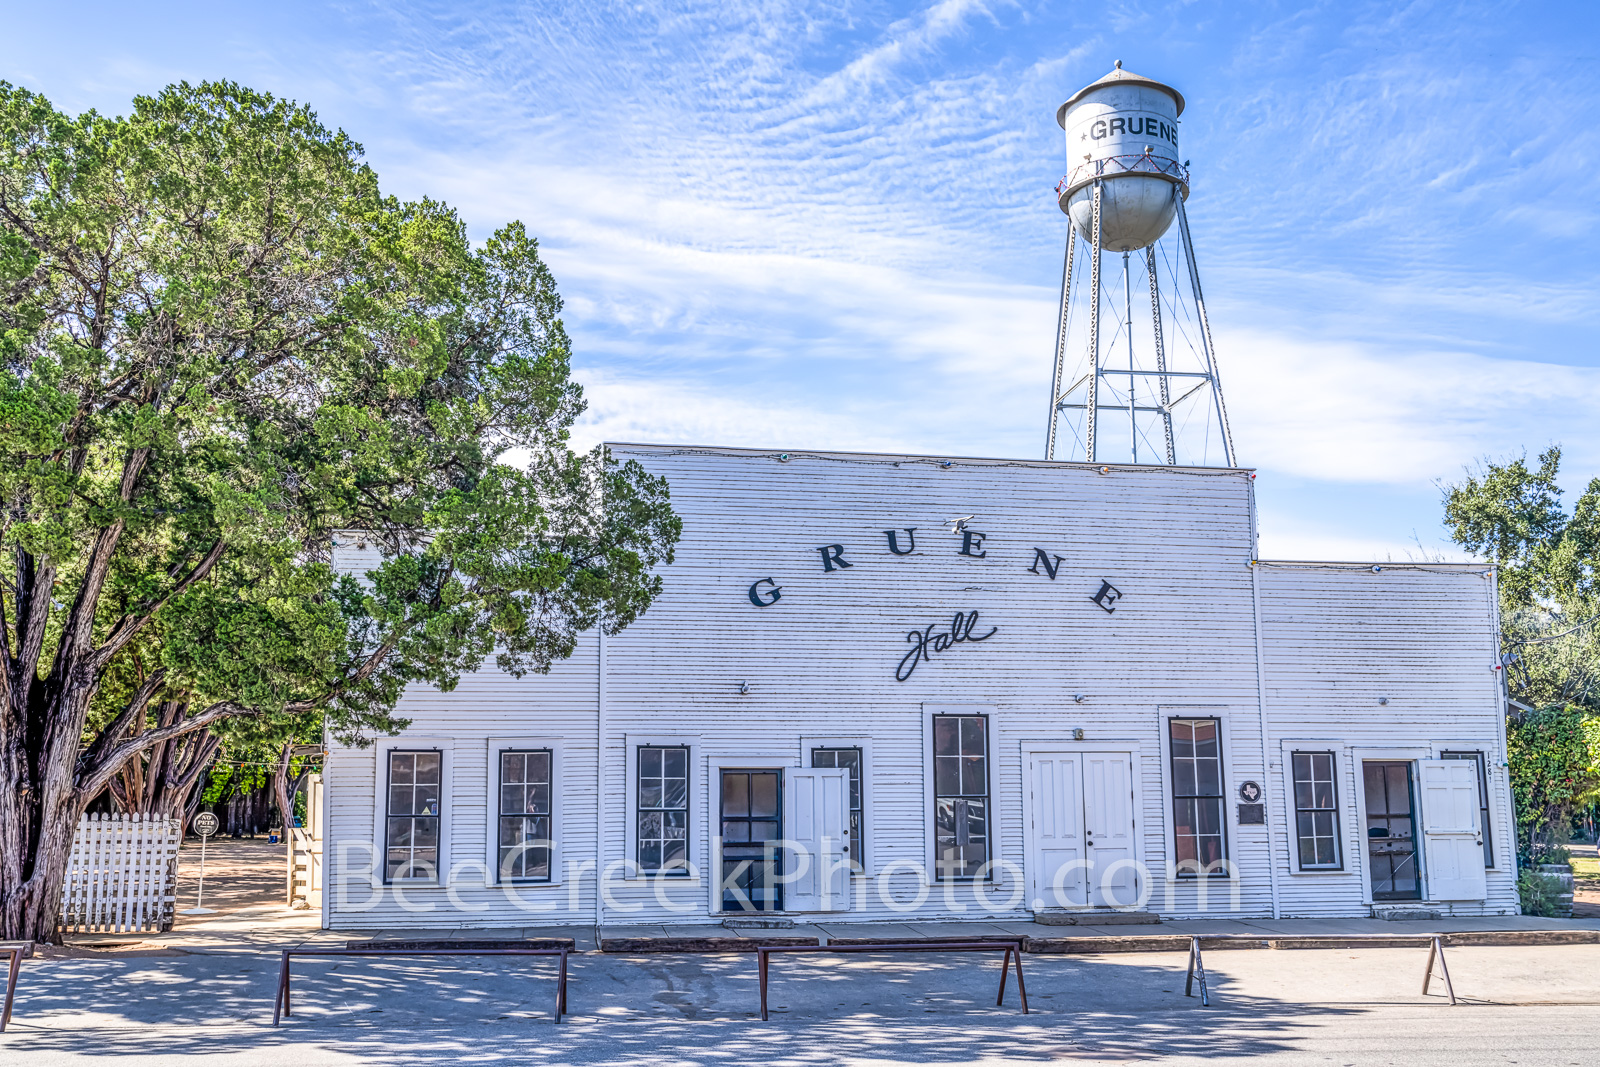 Gruene Hall, Gruene Texas, dance hall, saloon, town, community, Earnest Gruene, german, german town, Texas, texas hill country, visit, National Register of Historic Places, western swing,, photo